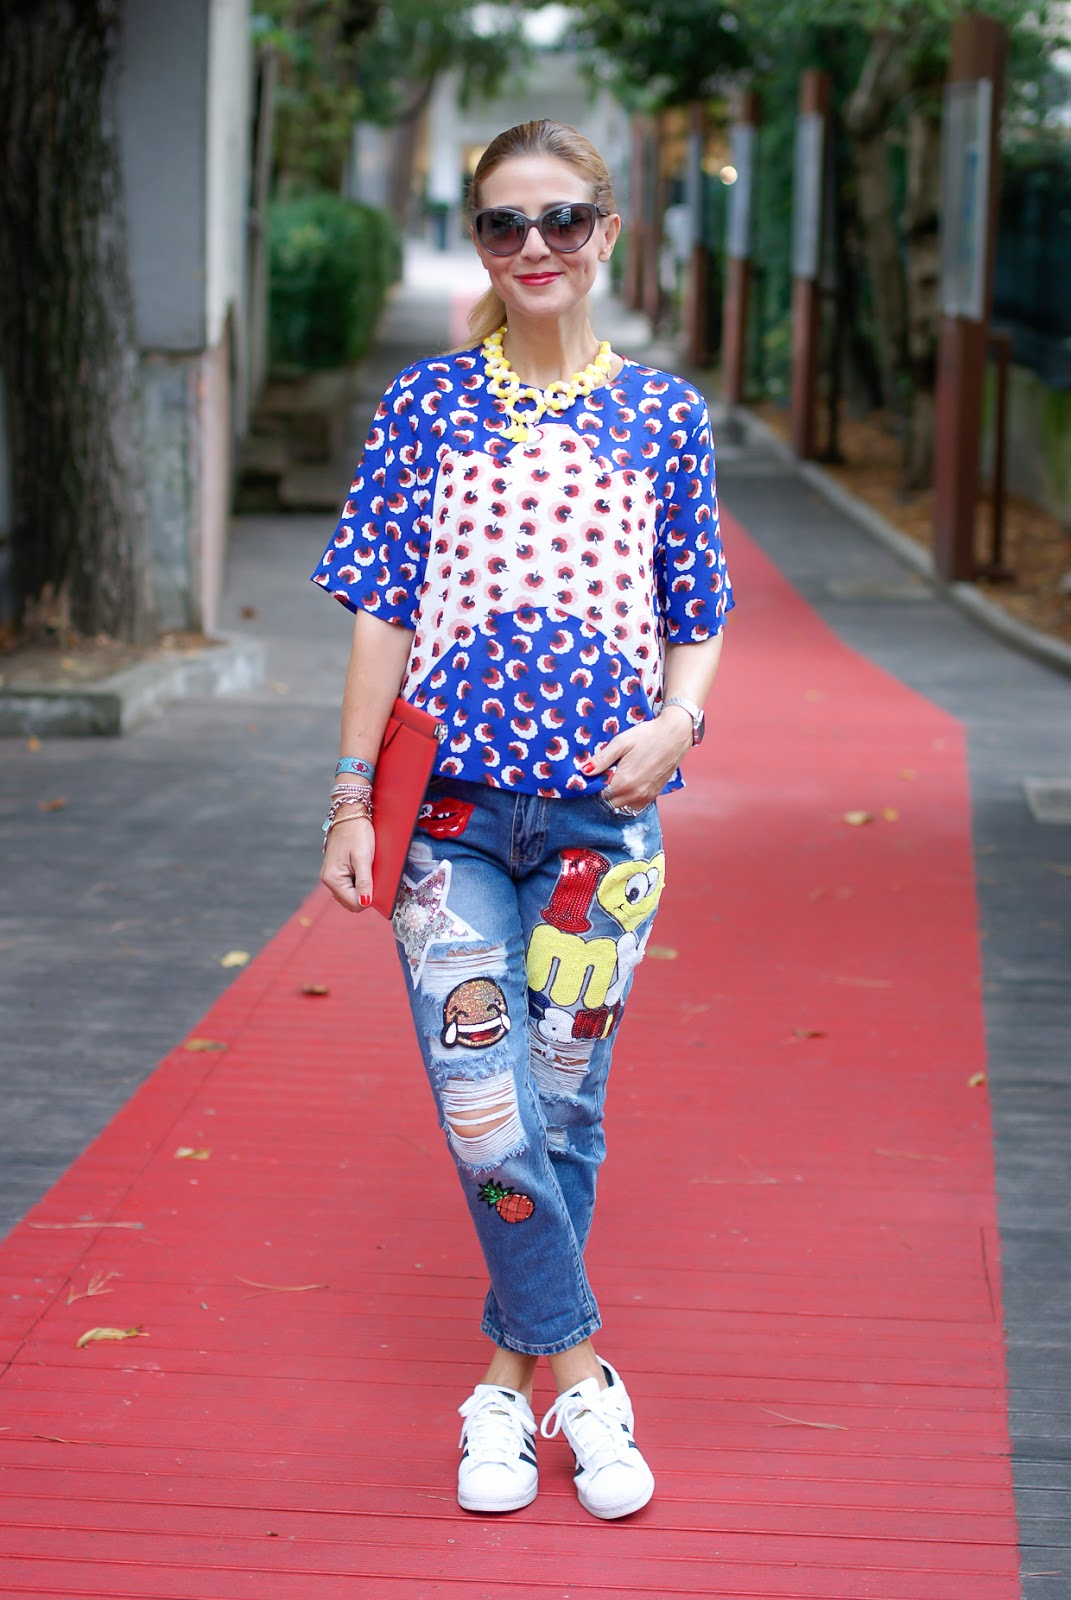 patched jeans with whatsapp emoji patch and Minueto blouse on Fashion and Cookies fashion blog, fashion blogger style